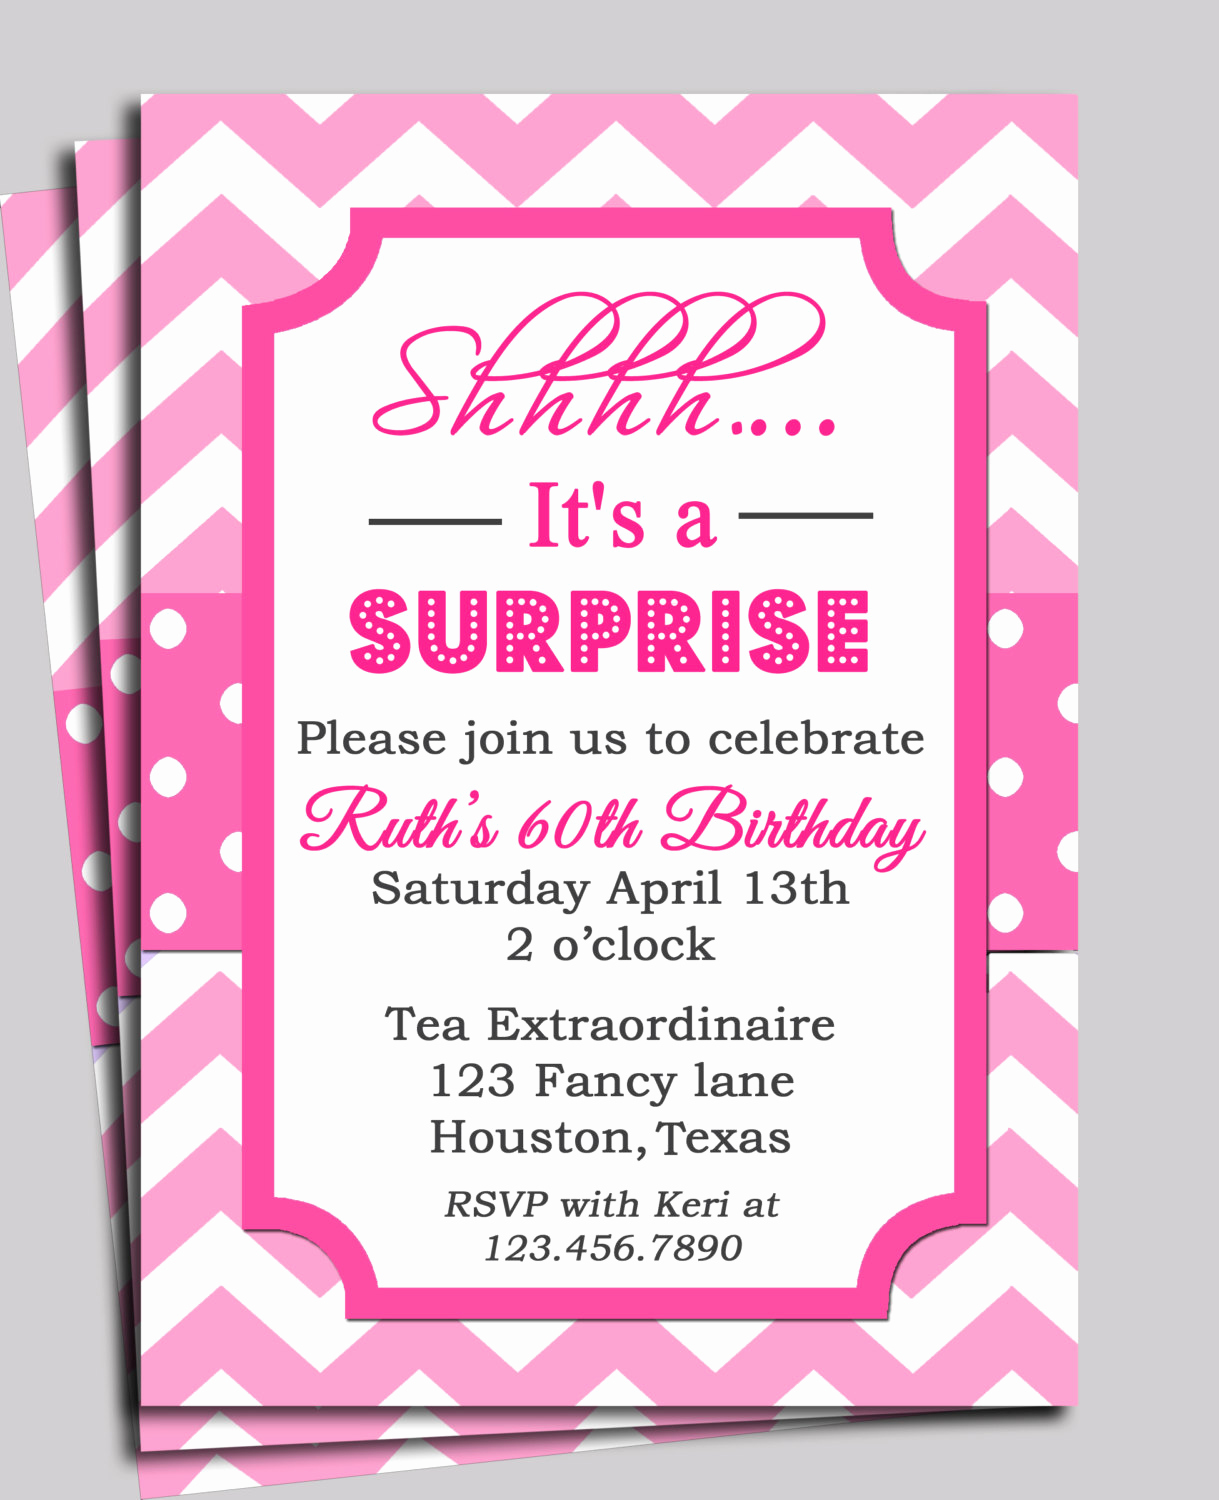 Bridal Shower Invitation Wording Awesome Chevron Invitation Printable or Free Shipping You Pick